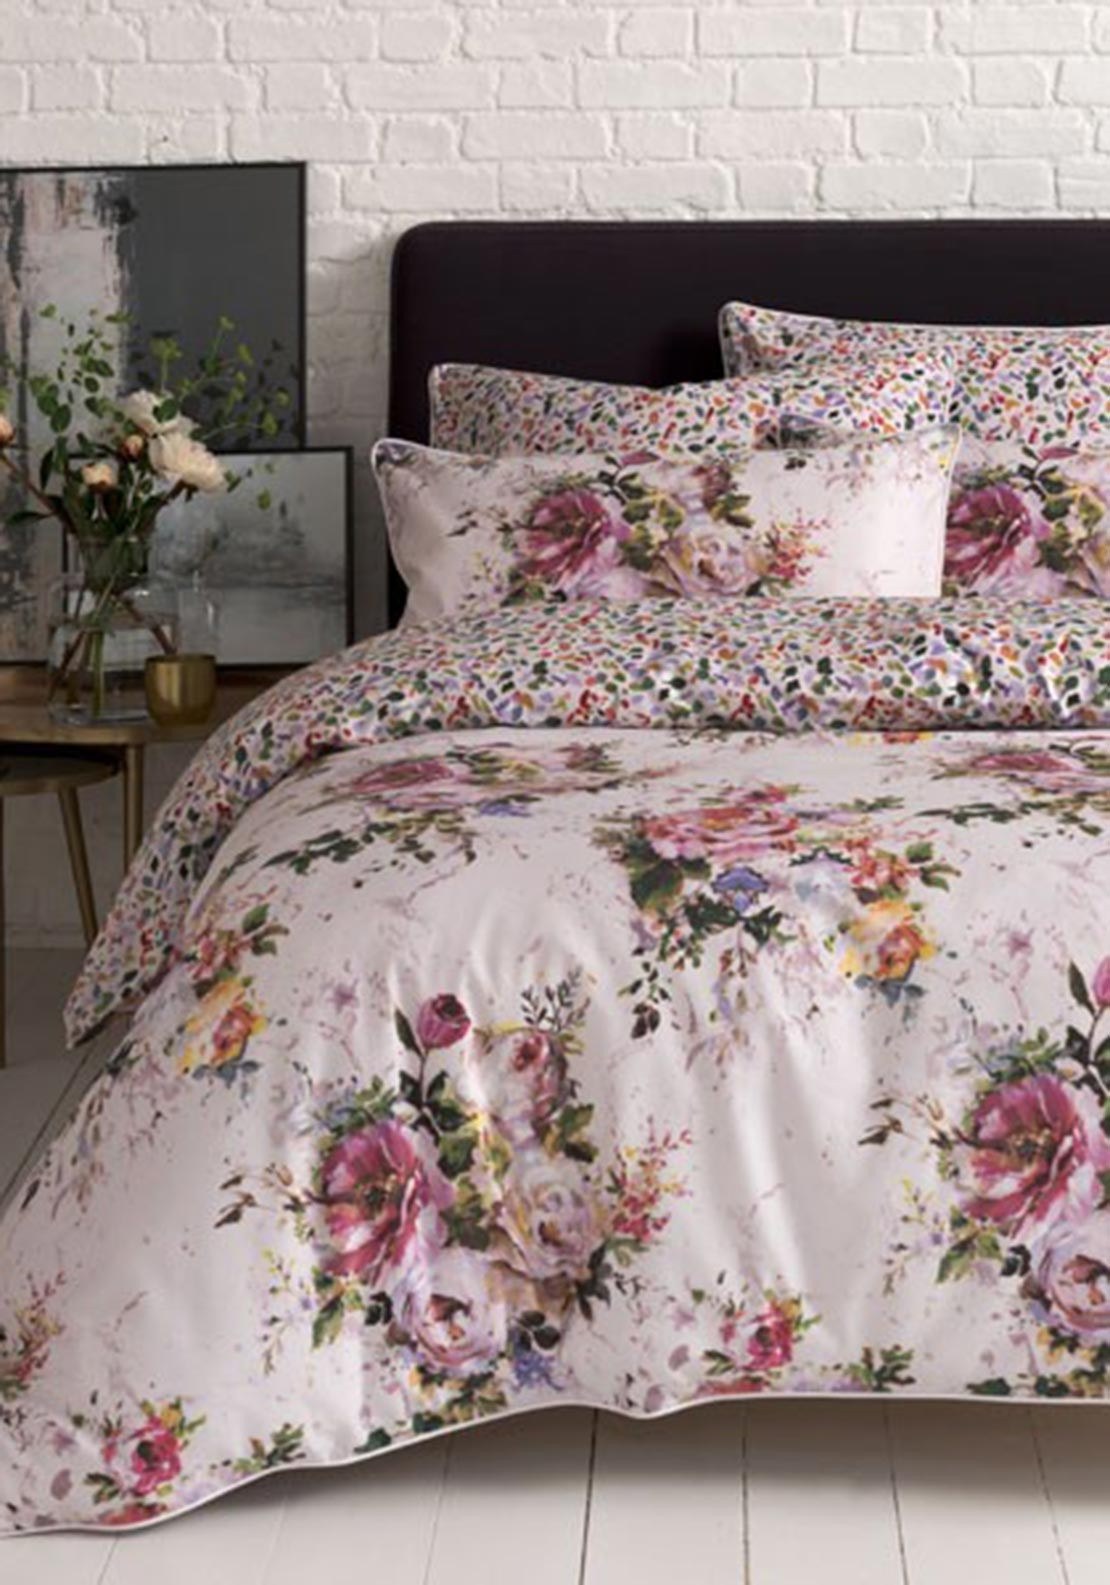 barn thistle print floral organic cover pin duvet bedding sham pottery